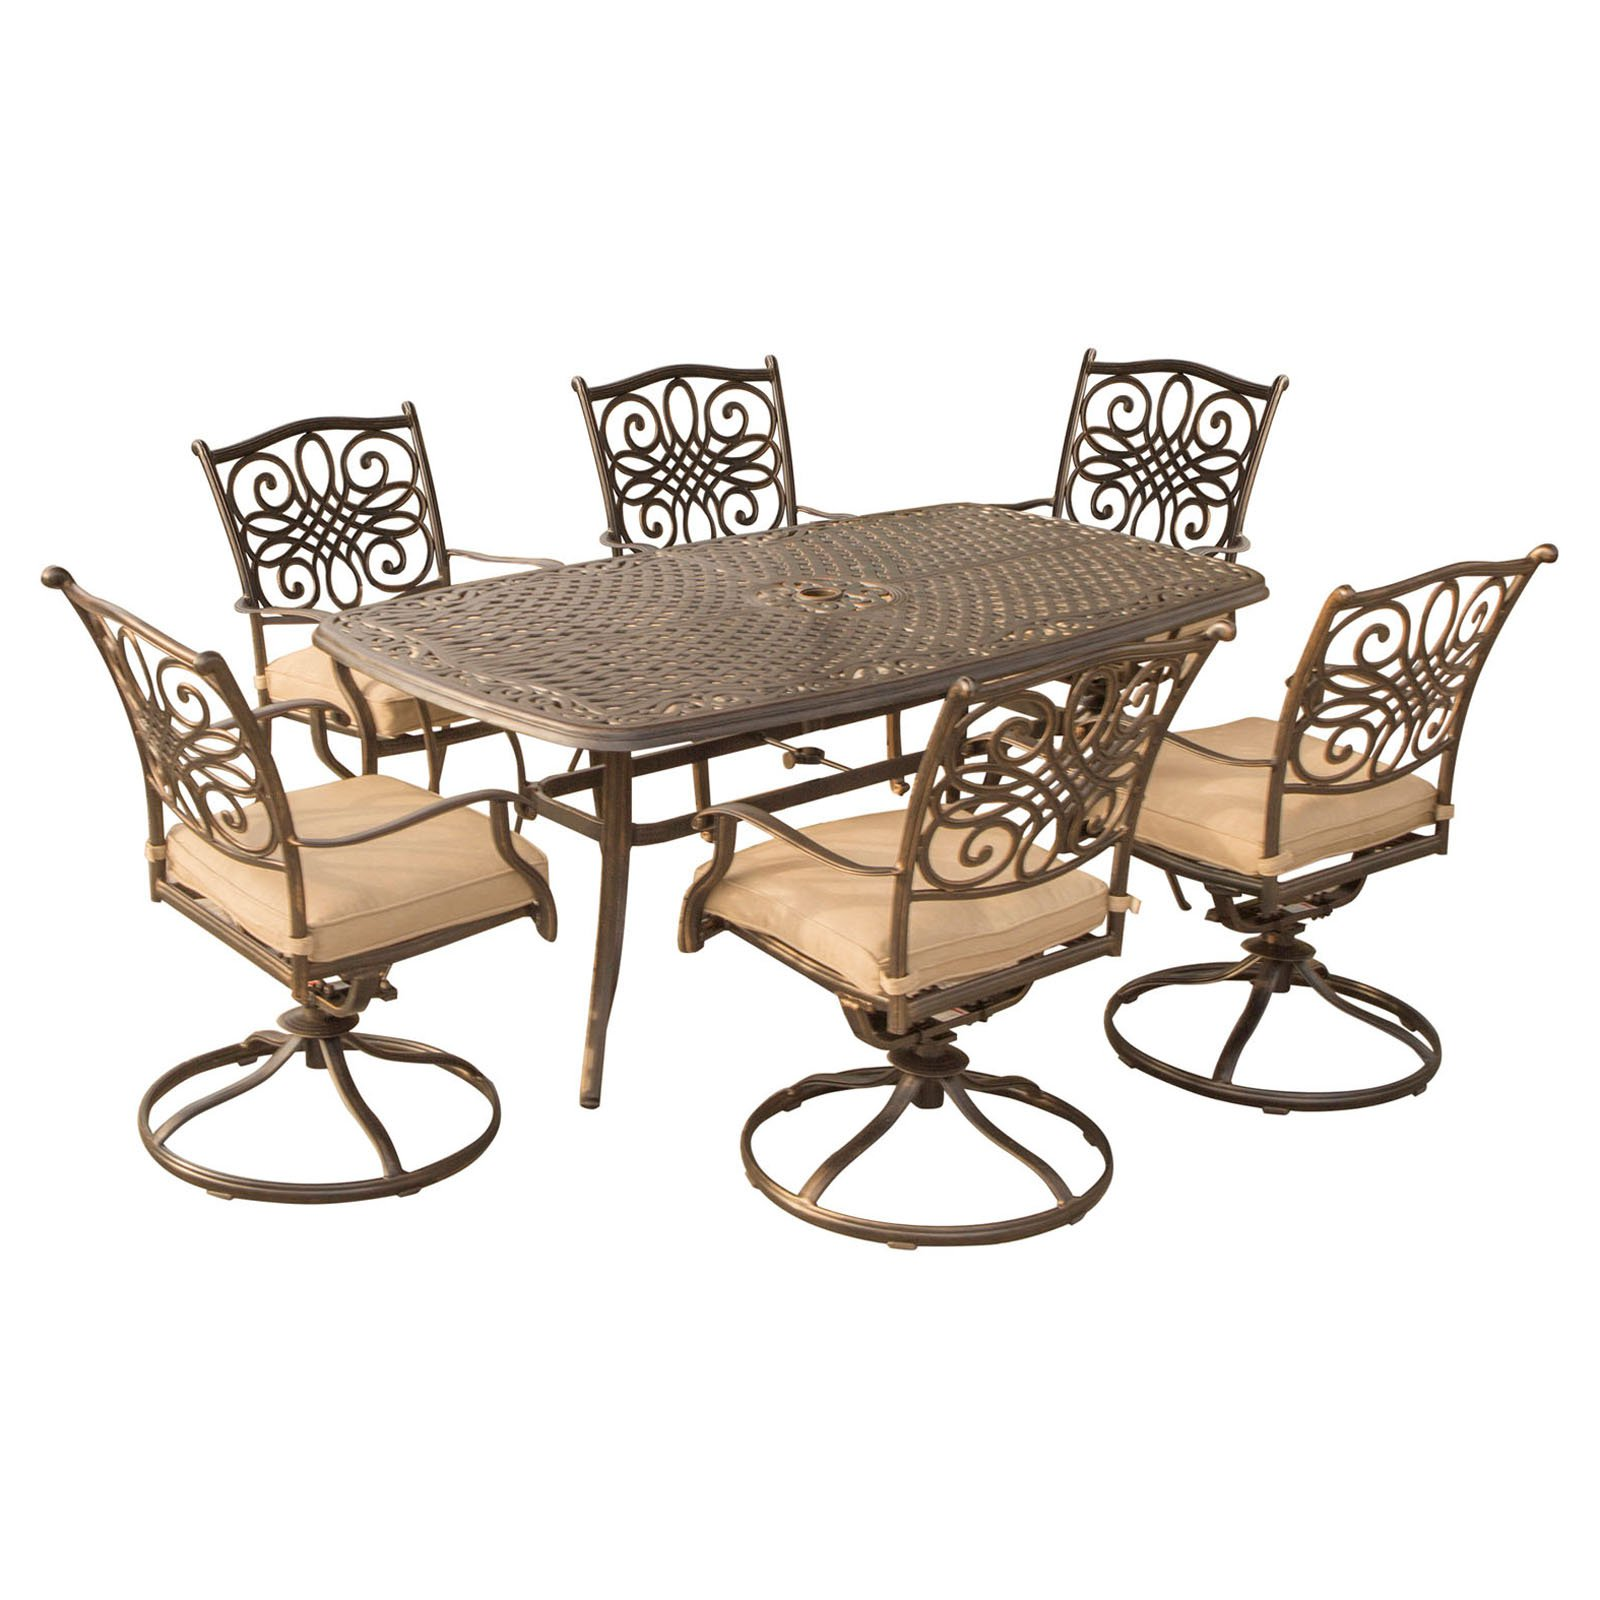 Hanover Traditions Aluminum 7 Piece Rectangular Patio Dining Set with Swivel Chair